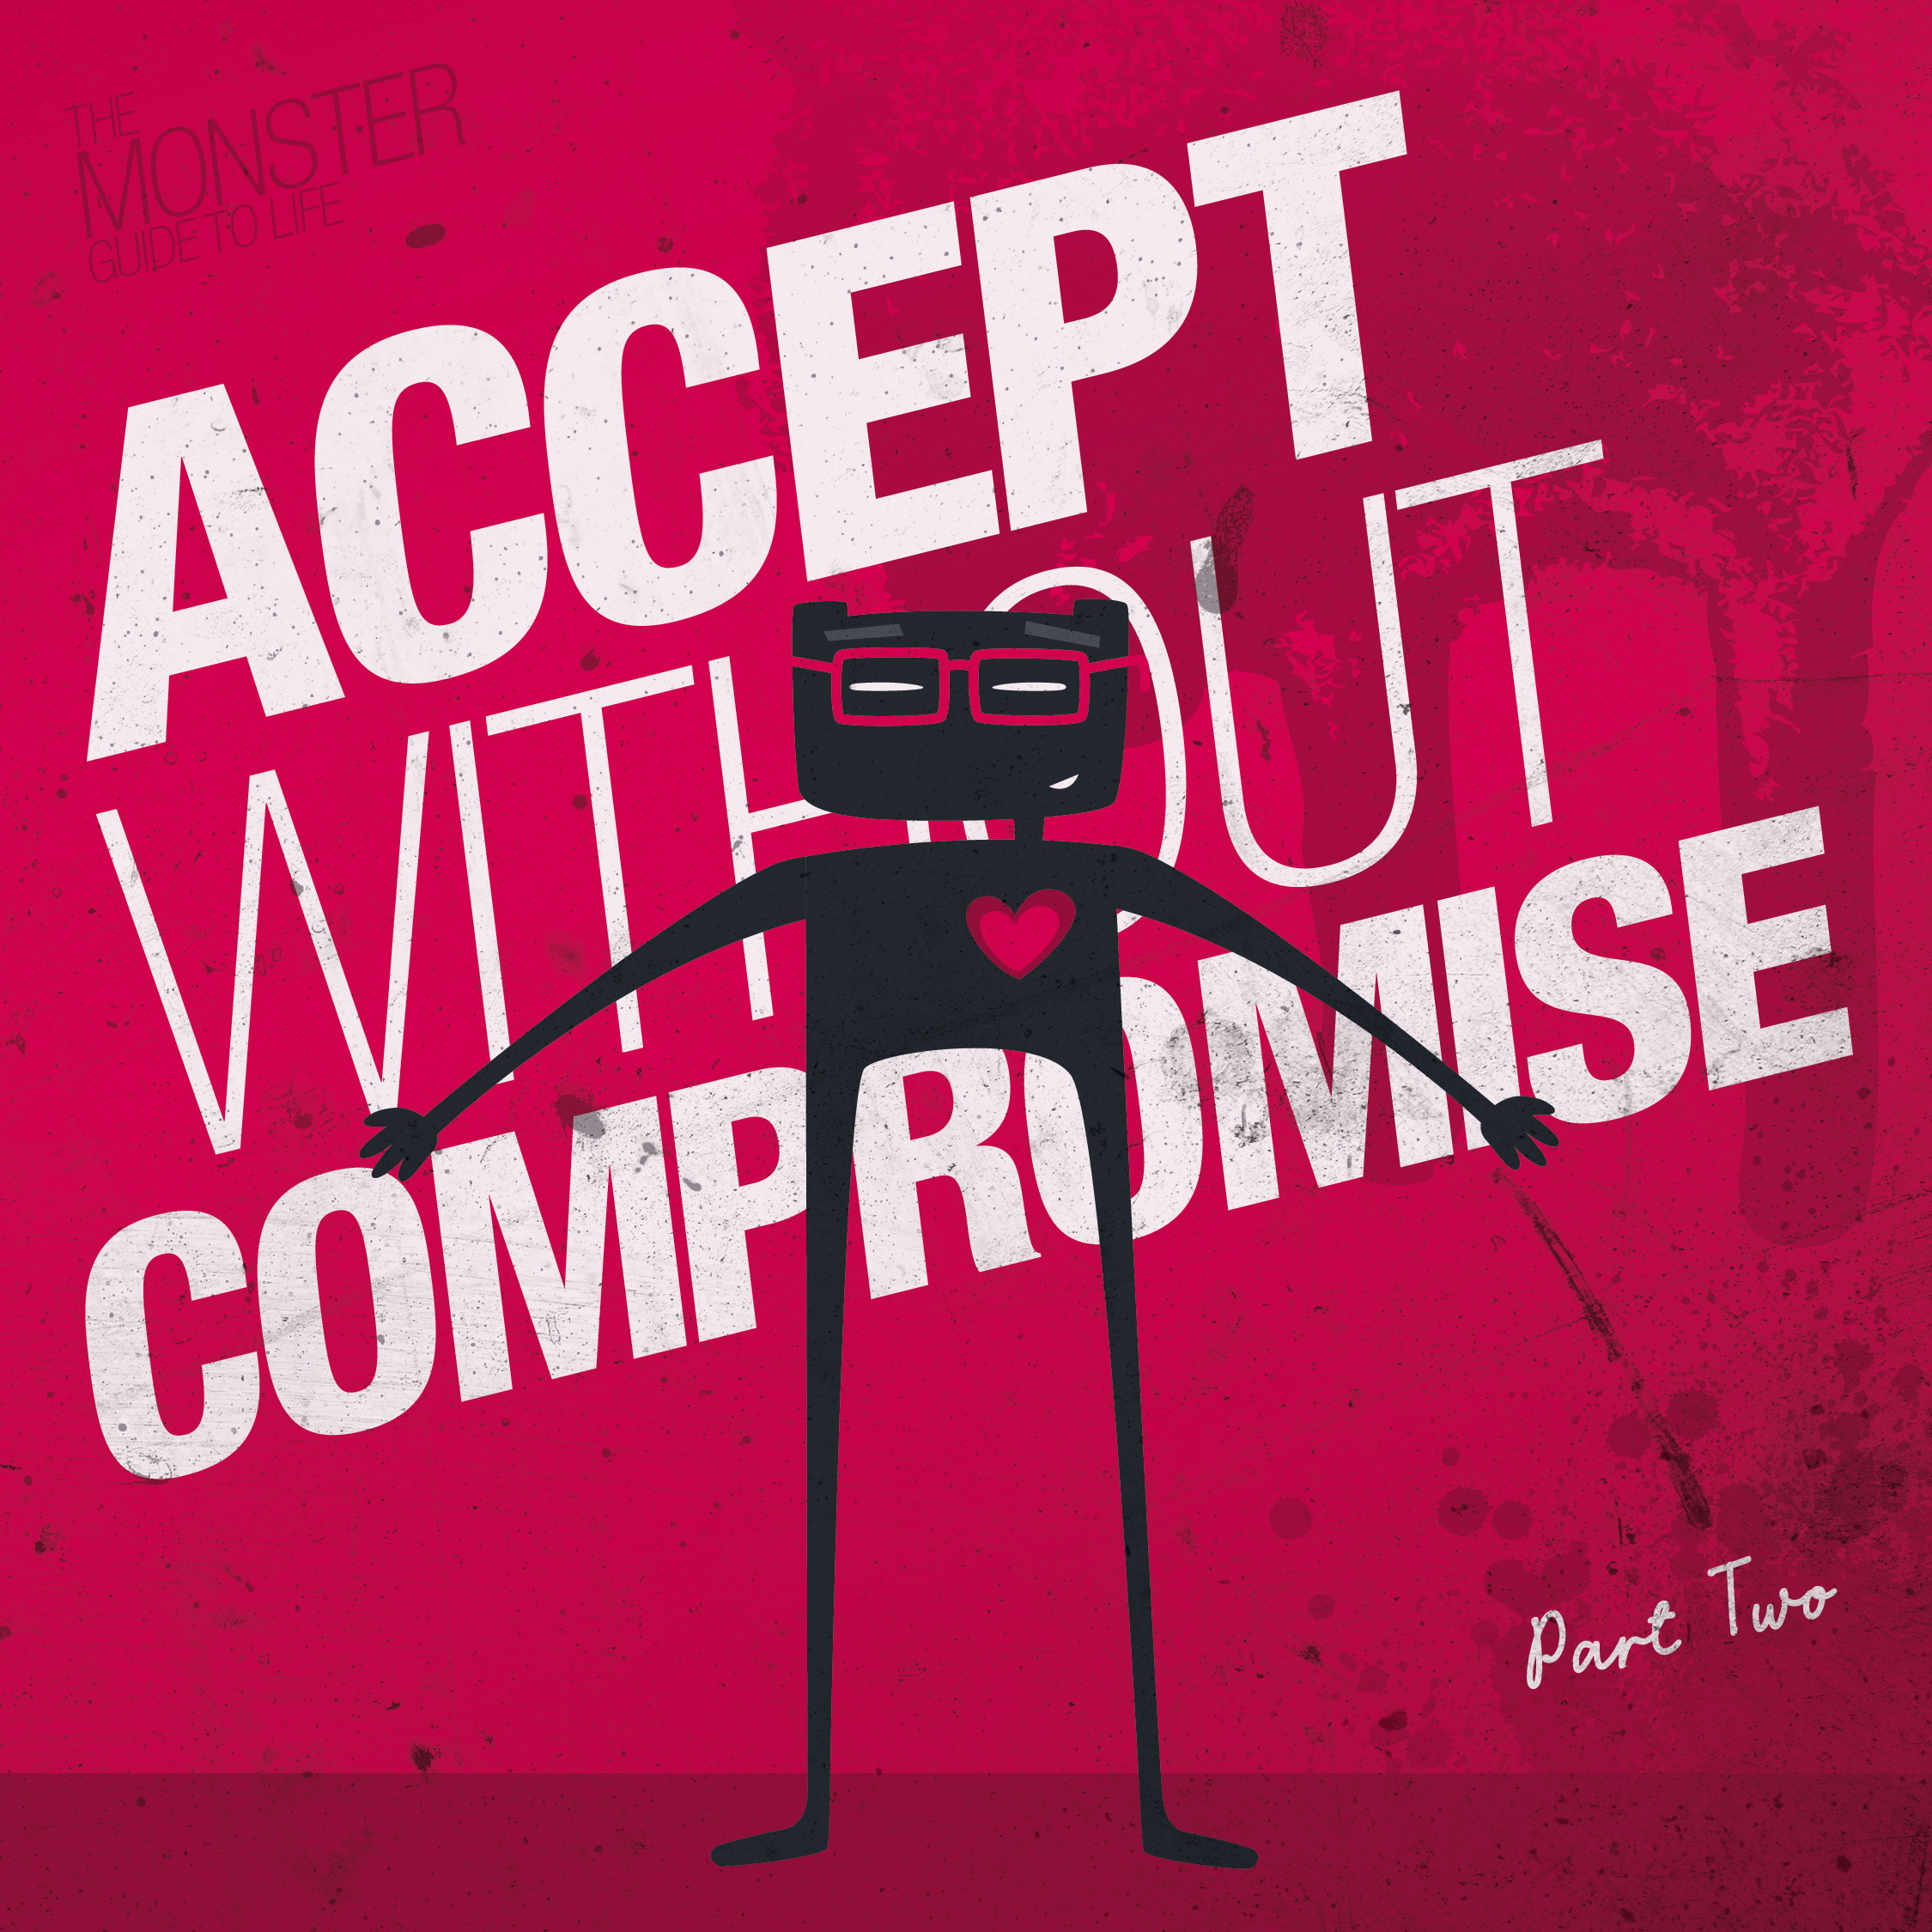 Accept without compromise